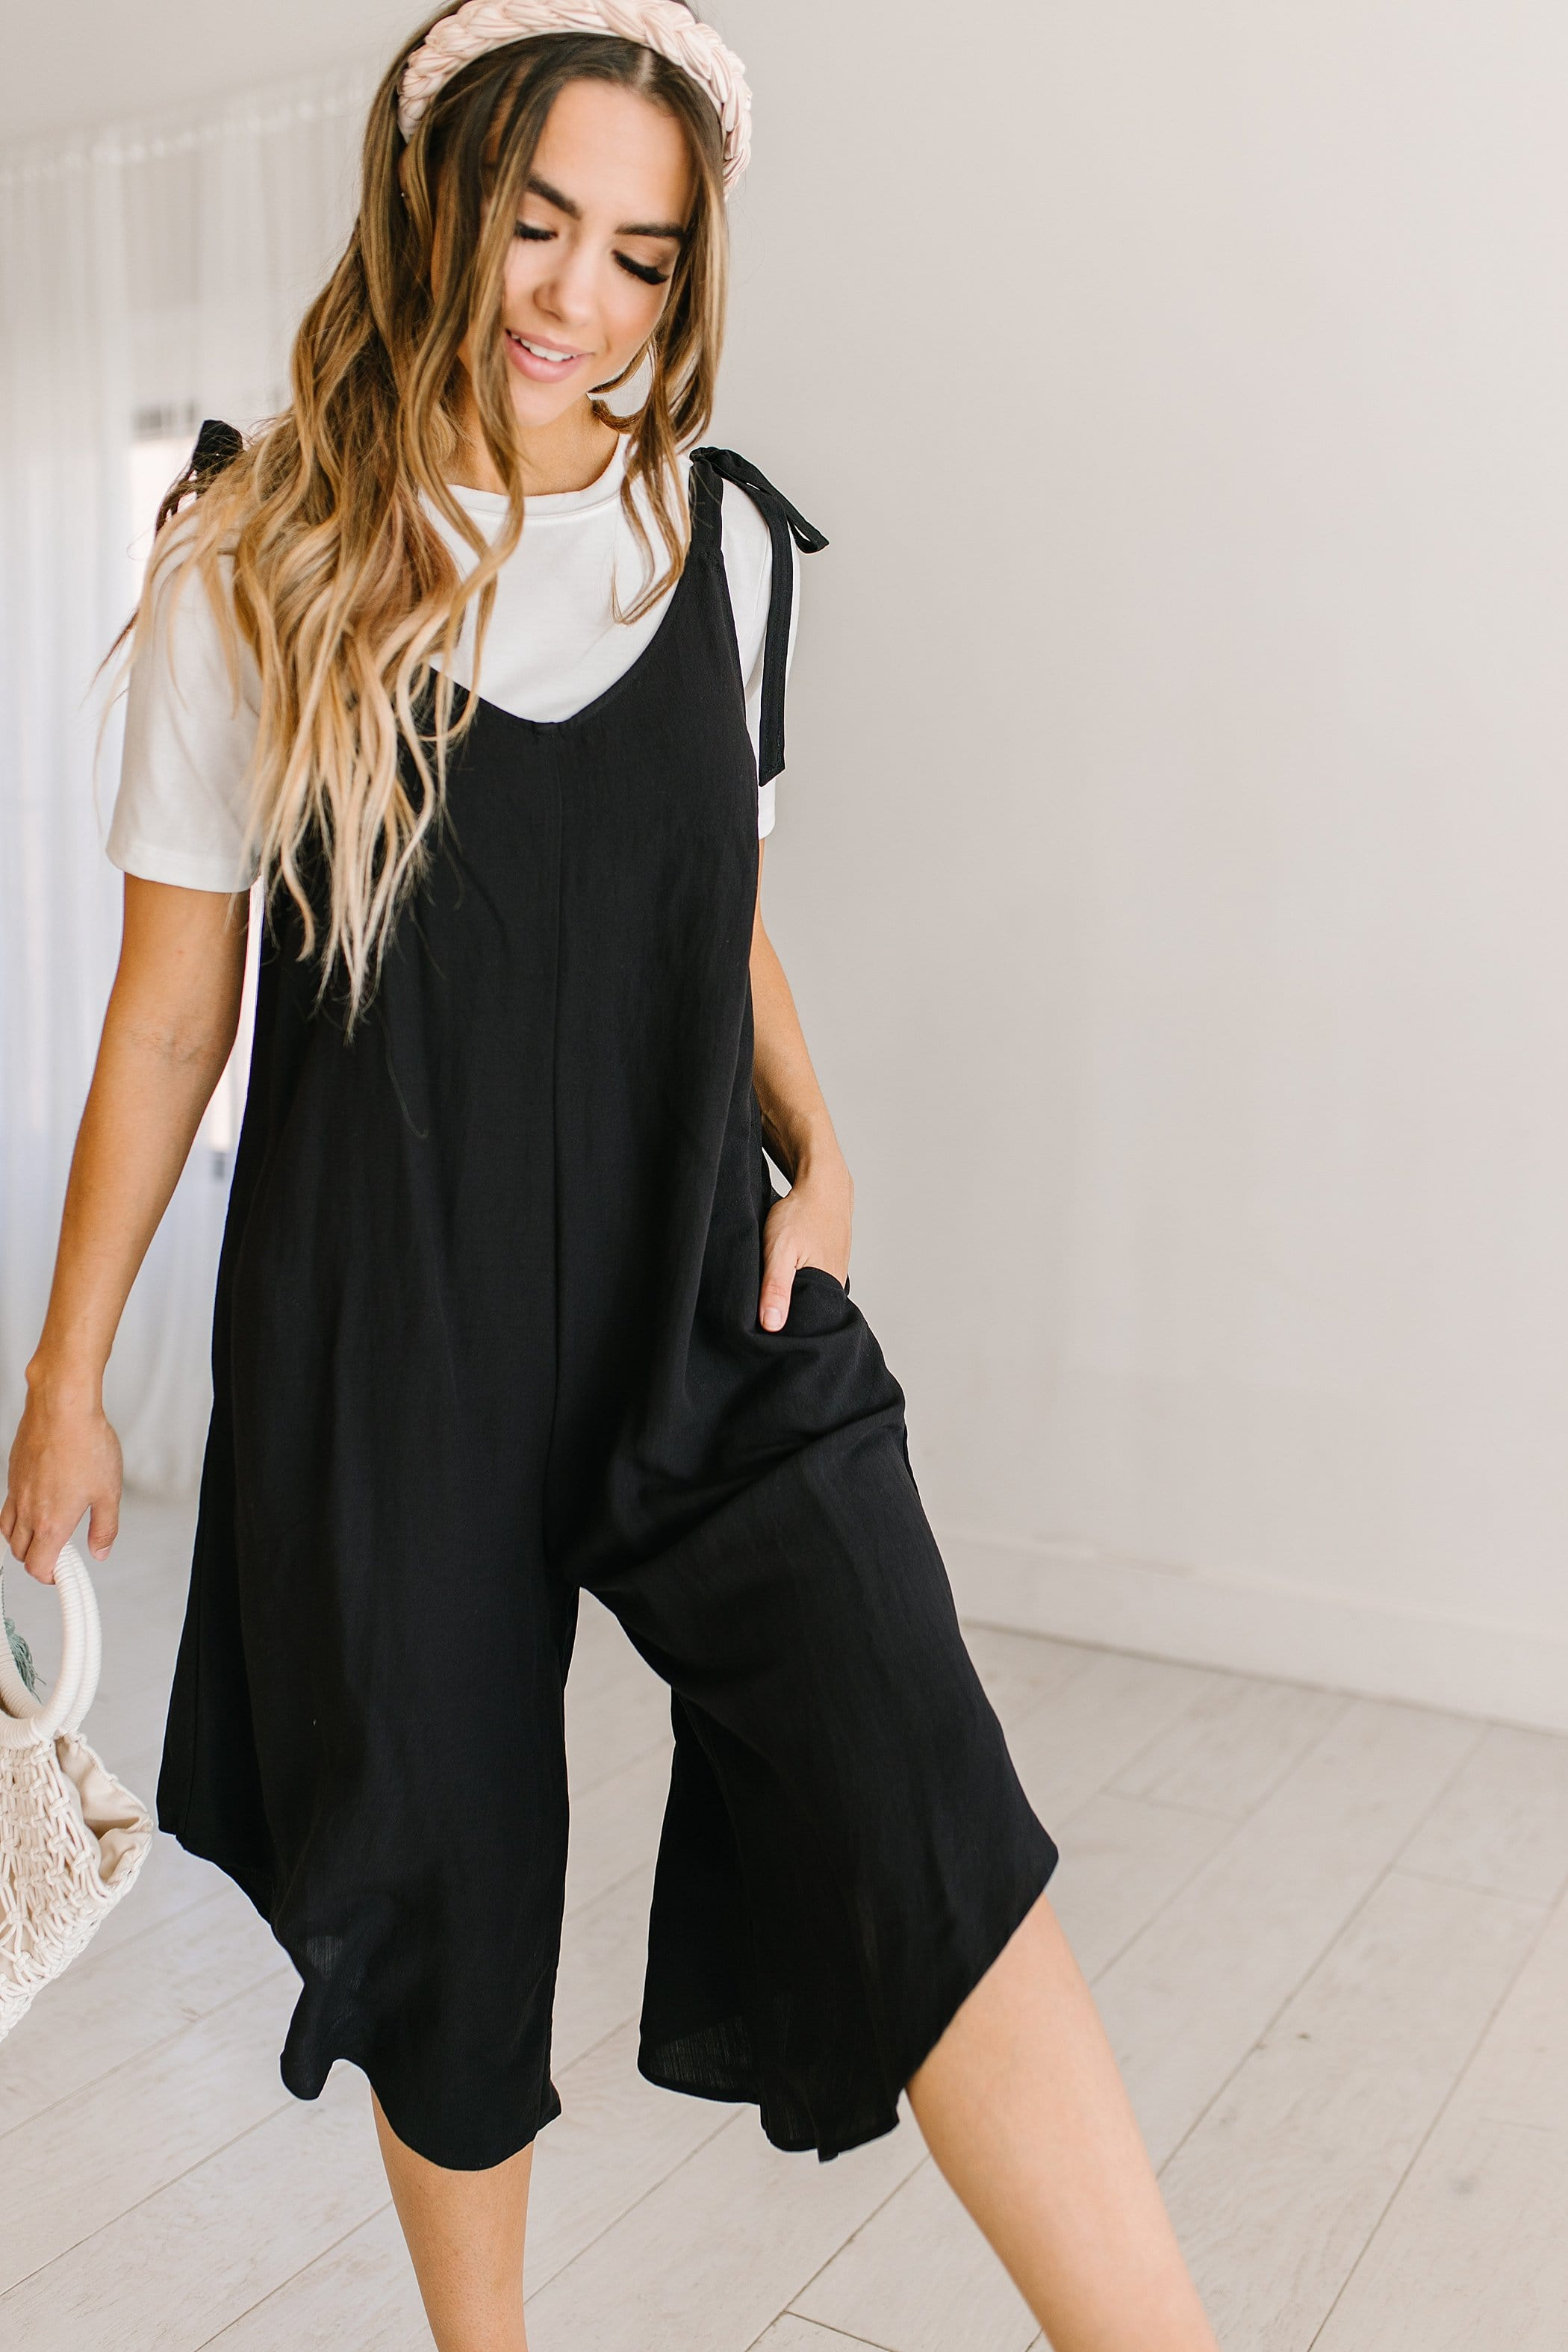 The Charley Romper in Black